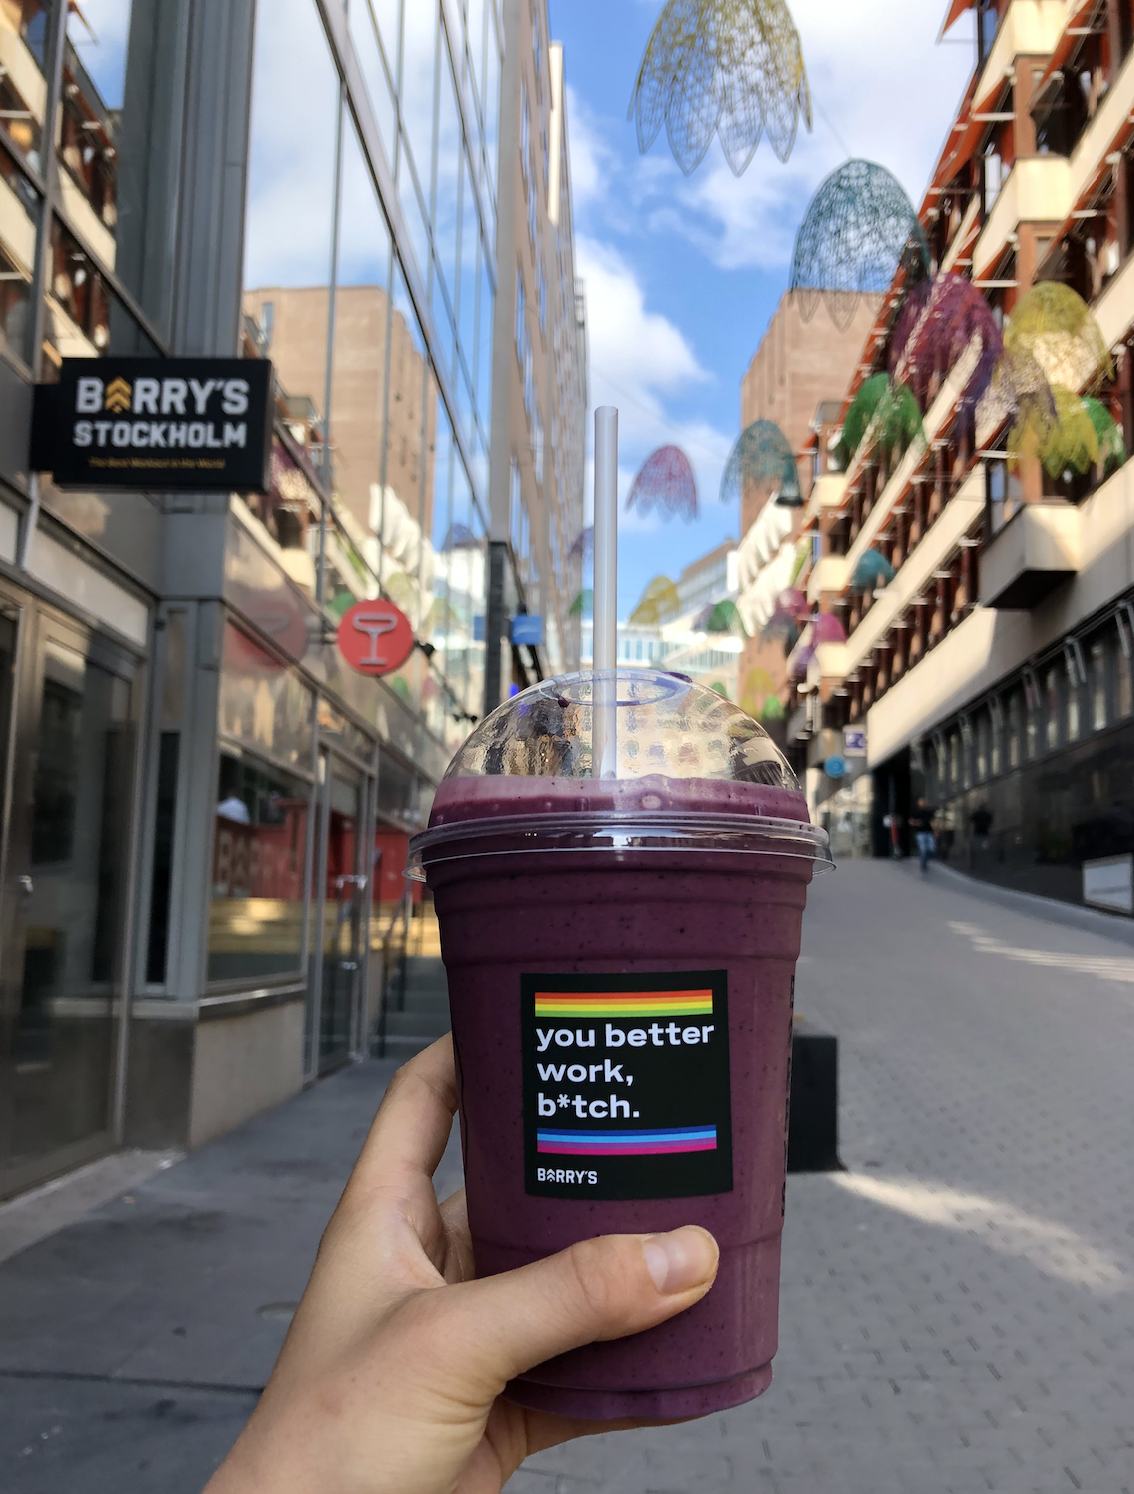 Made in Sweden smoothie from Barry's Bootcamp in Stockholm, Sweden